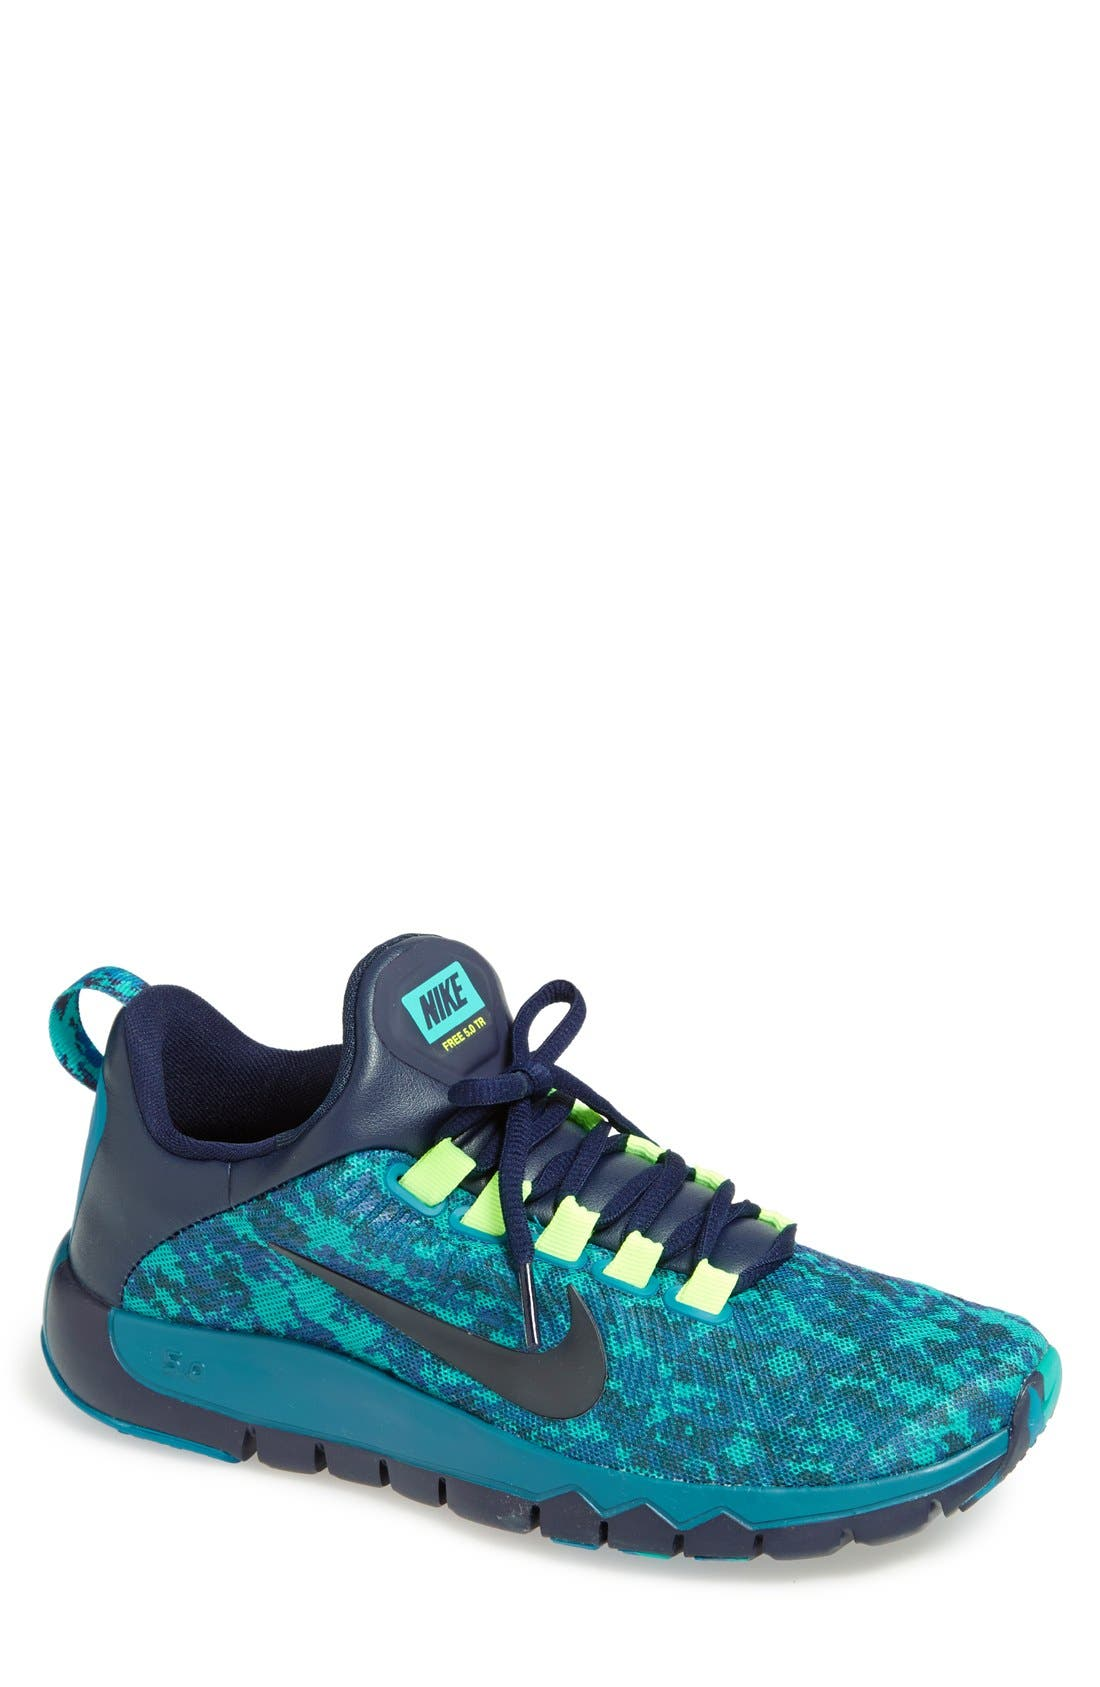 Main Image - Nike 'Free Trainer 5.0 NRG' Training Shoe (Men)